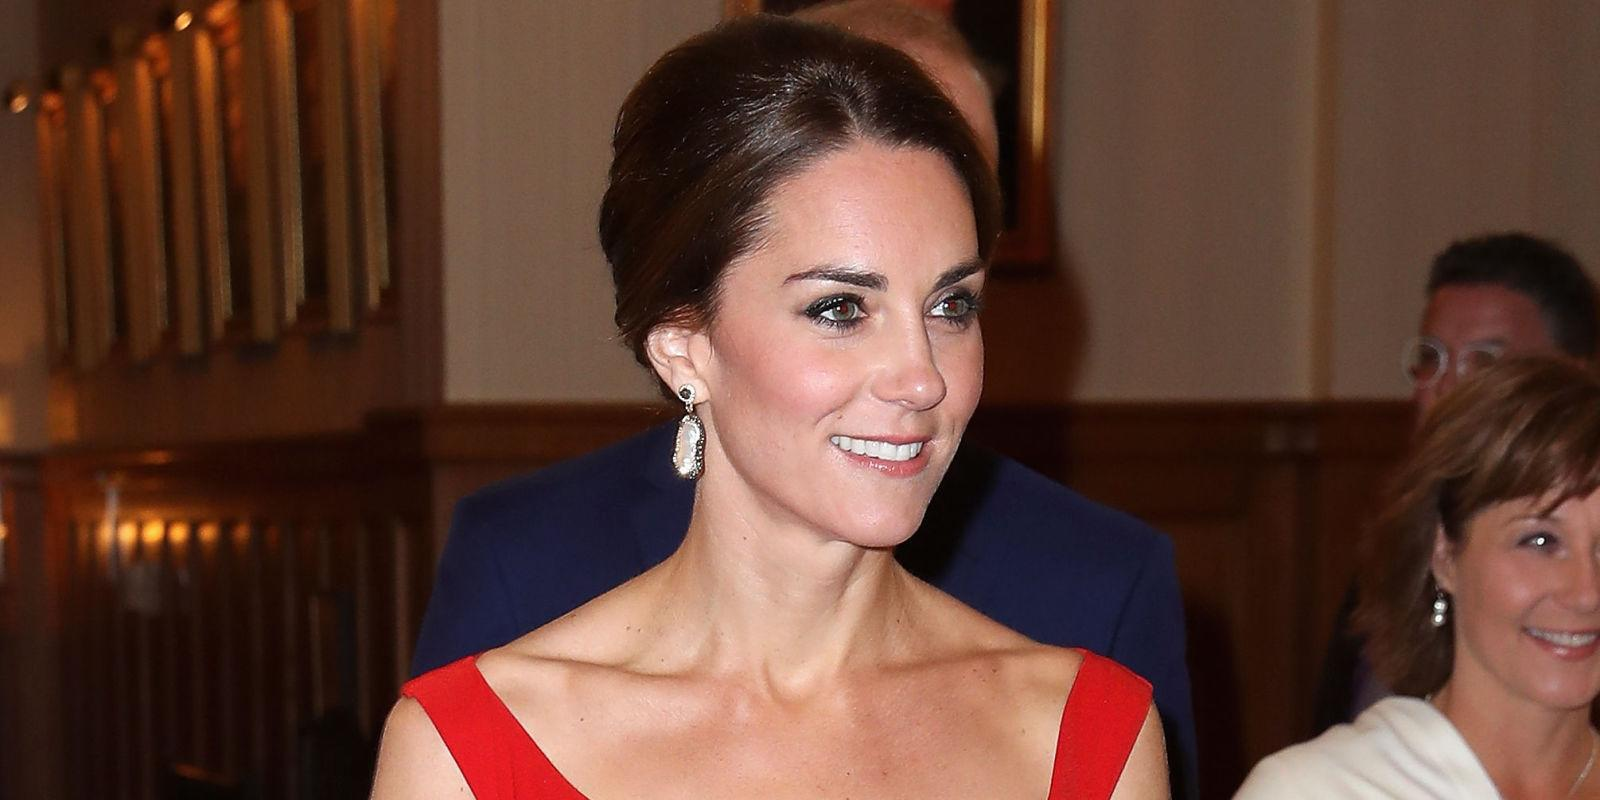 Kate Middleton Also Chose to Wear Red Last Night